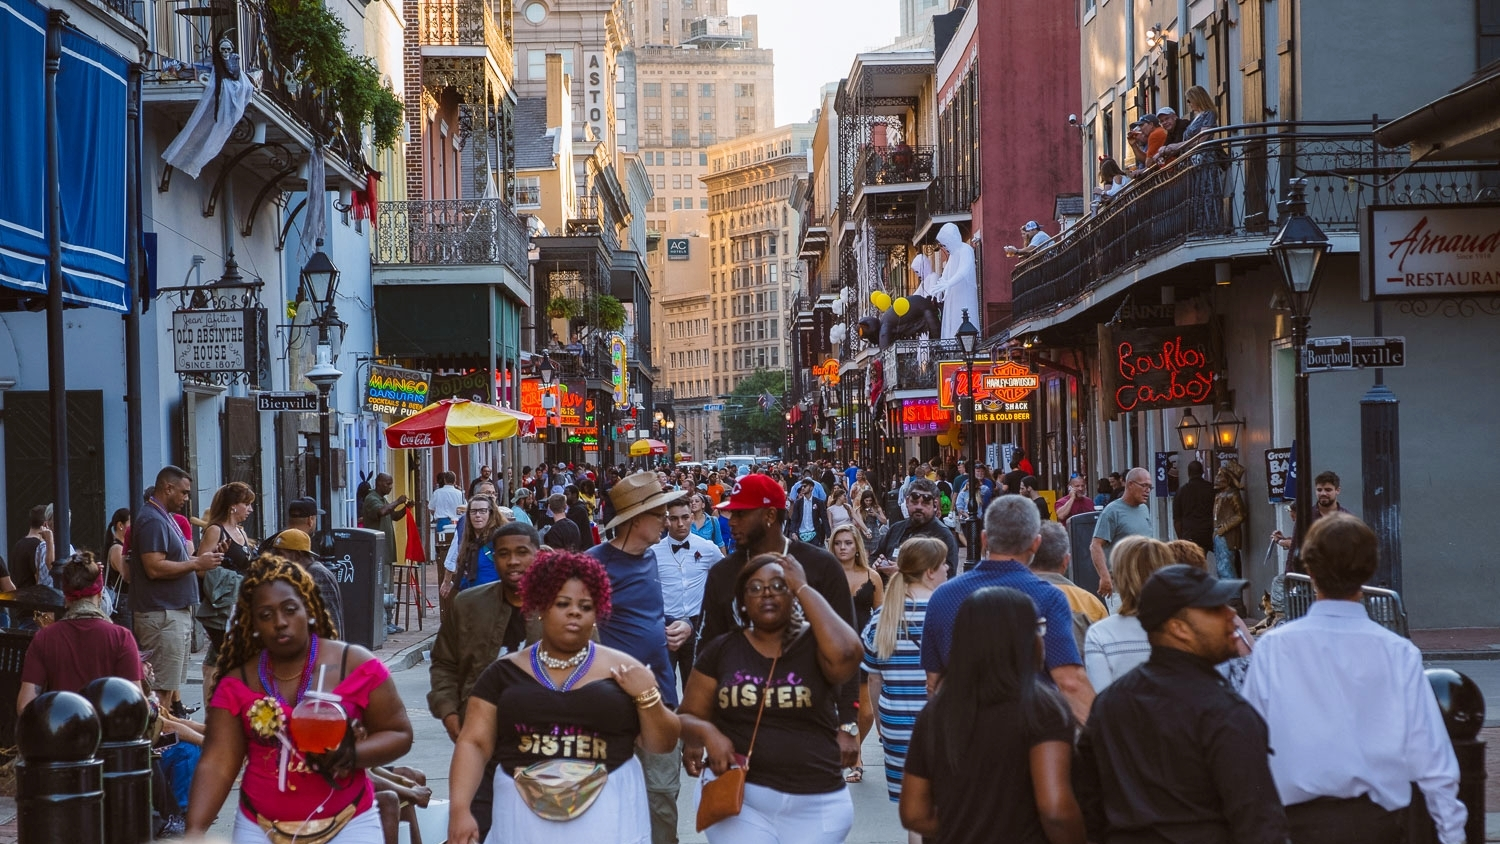 """Bourbon Street during golden hour, New Orleans. Travel photography and guide by © Natasha Lequepeys for """"And Then I Met Yoko"""". #neworleans #nola #travelguide #photoblog #travelblog #travelphotography #travelitinerary #fujifilm #usa #visitnola #weekendgetaway #travel #neworleans3dayitinerary #bourbonstreet #streetphotography #city #urban #touristattraction #goldenhour #streetparty"""